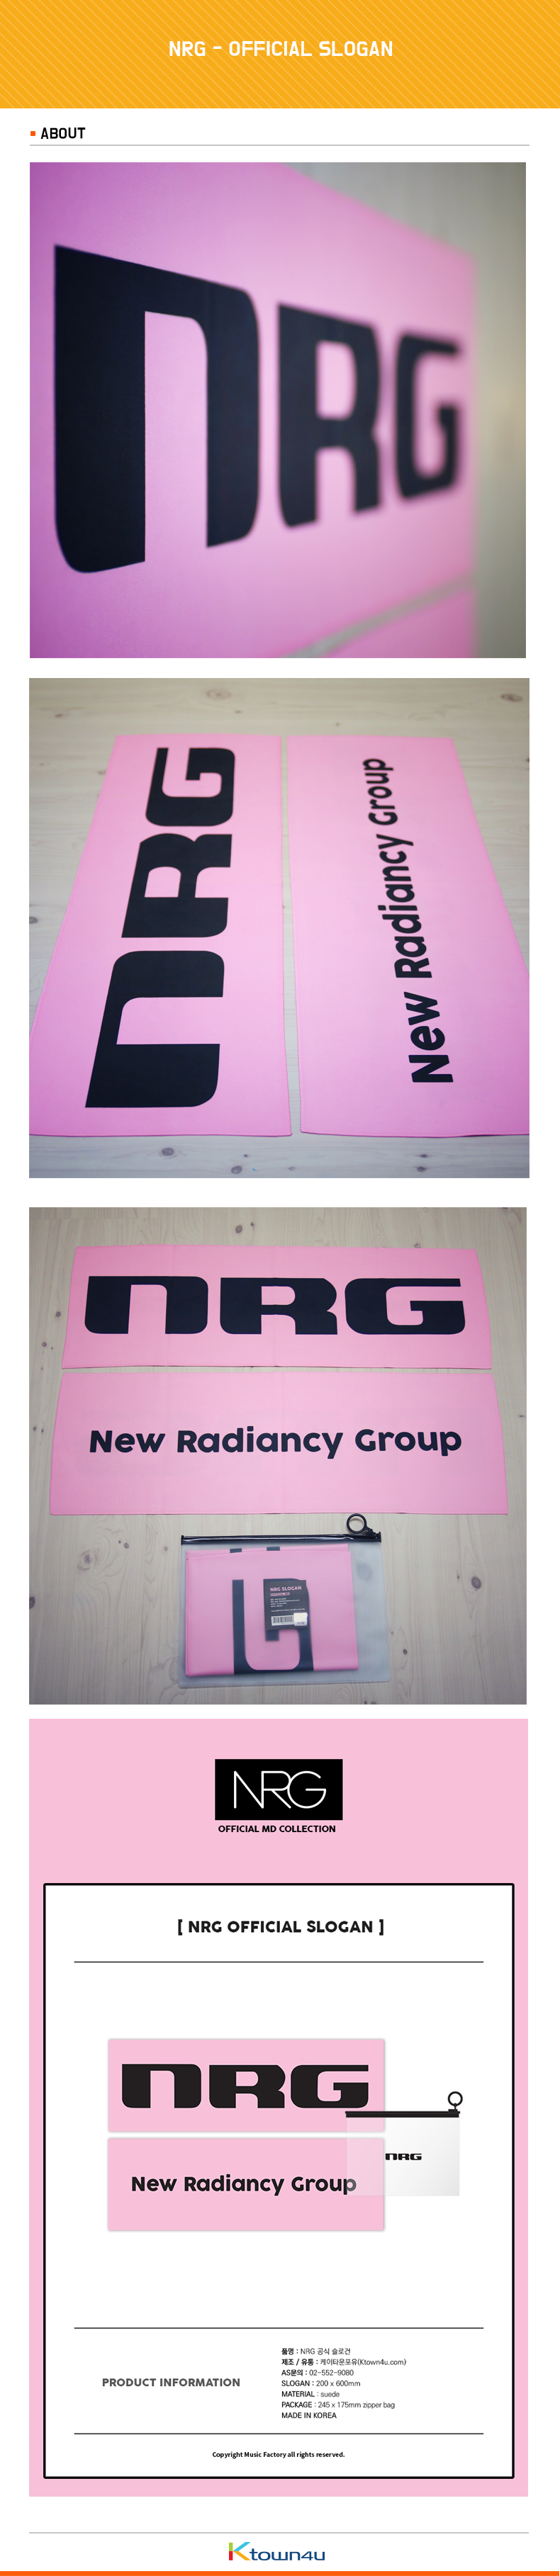 NRG - OFFICIAL SLOGAN